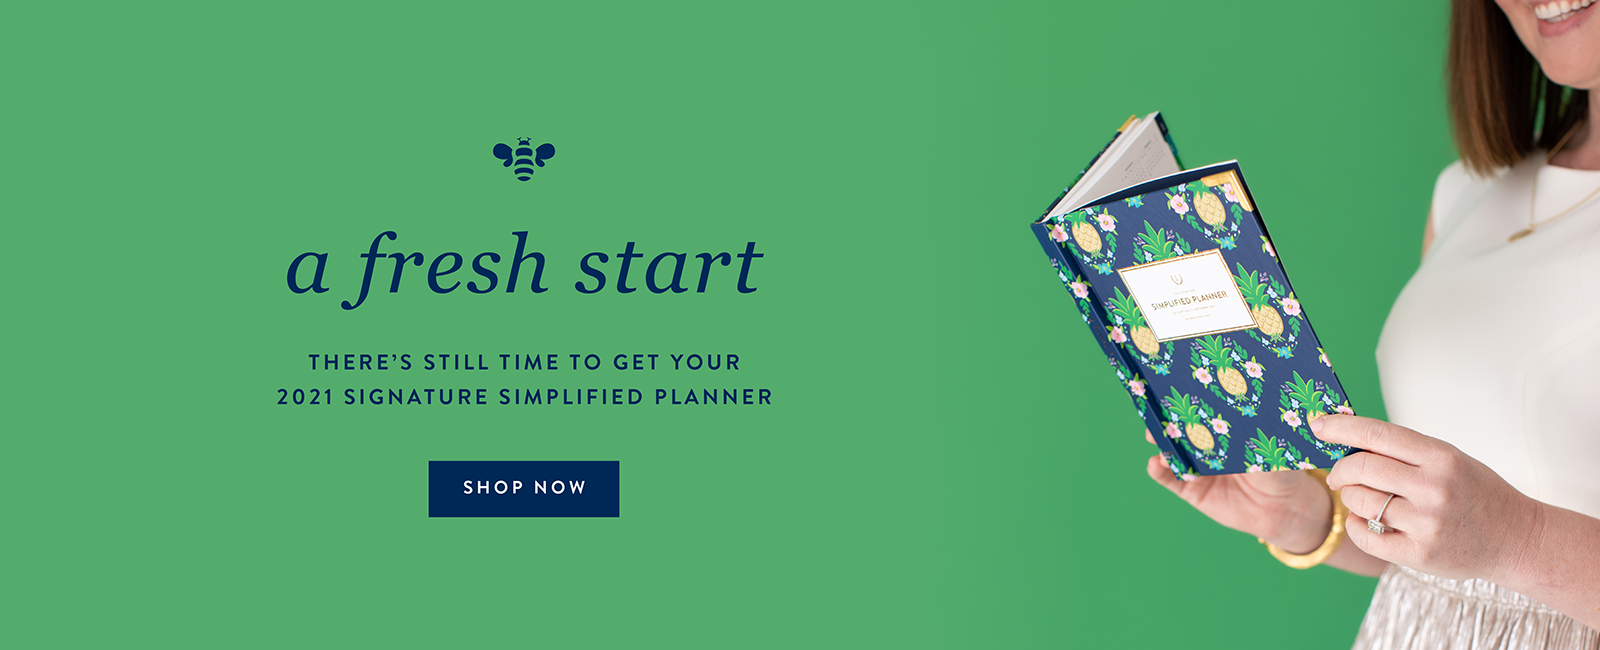 2021 Simplified Planners are available!